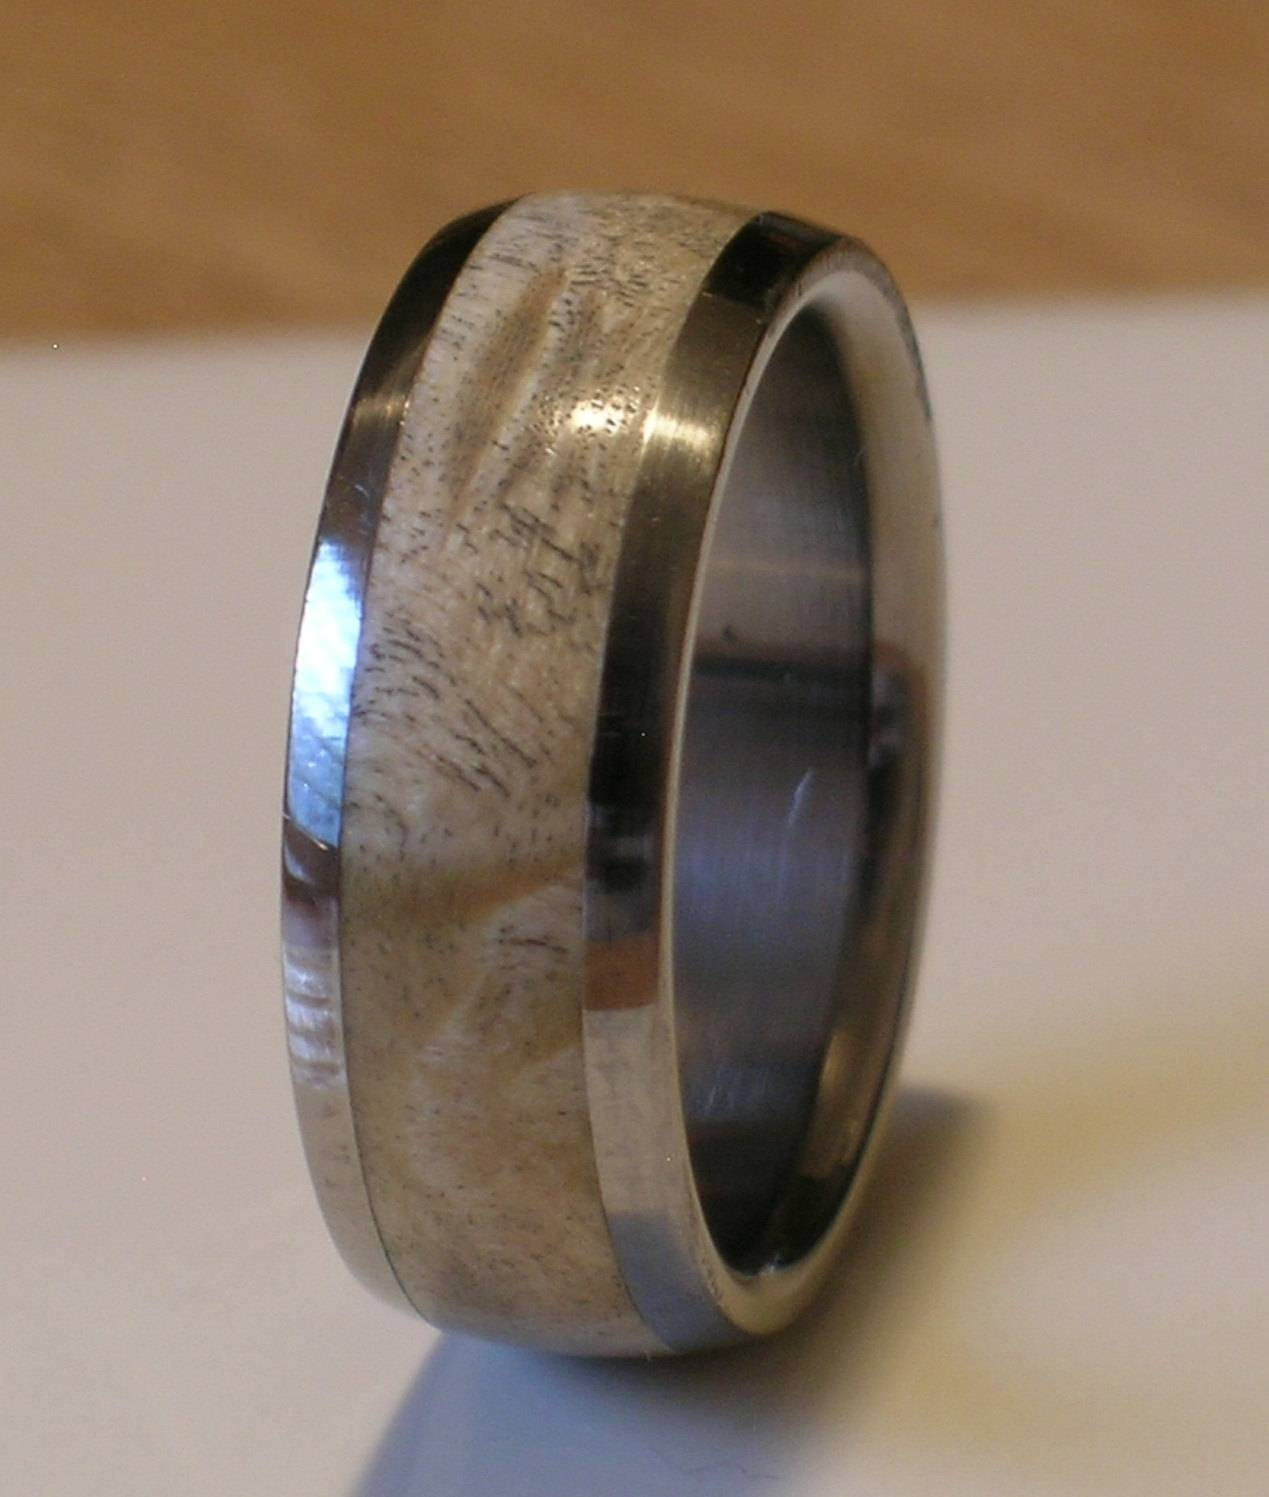 wooden wedding rings of distinct and generosity wedding ideas with mens wooden wedding bands - Mens Wooden Wedding Rings